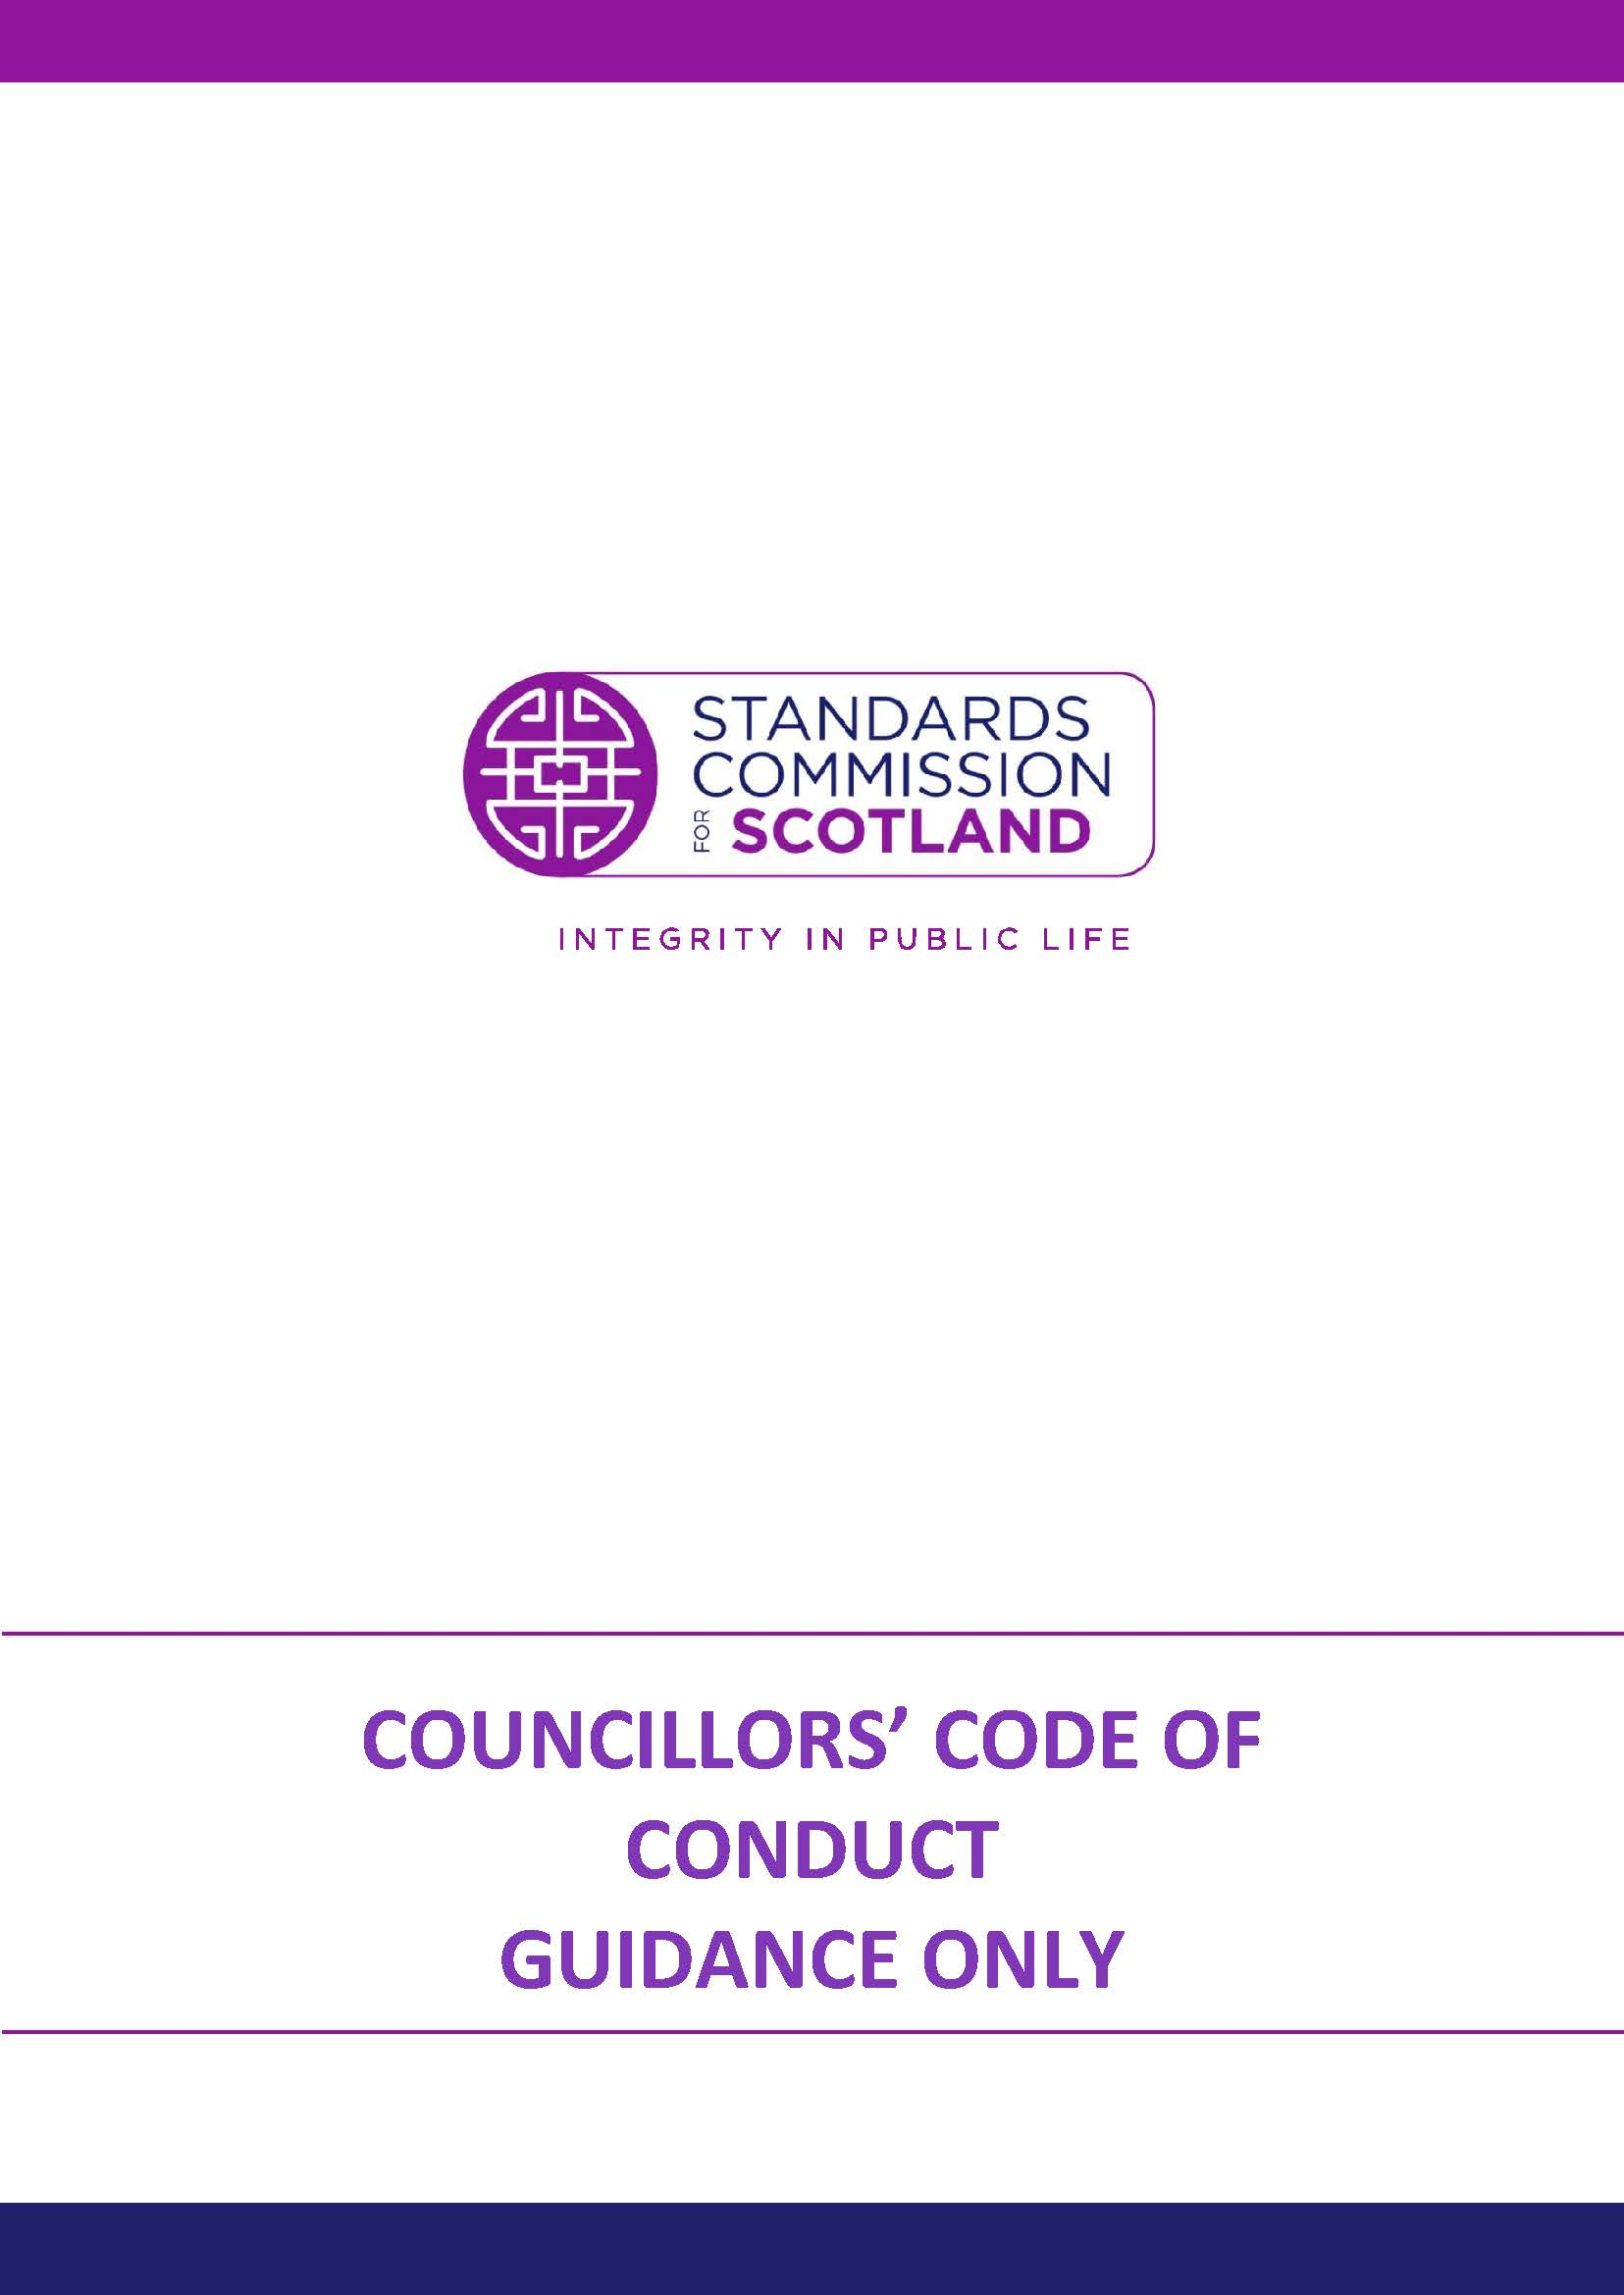 Councillors' Code of Conduct - Guidance only